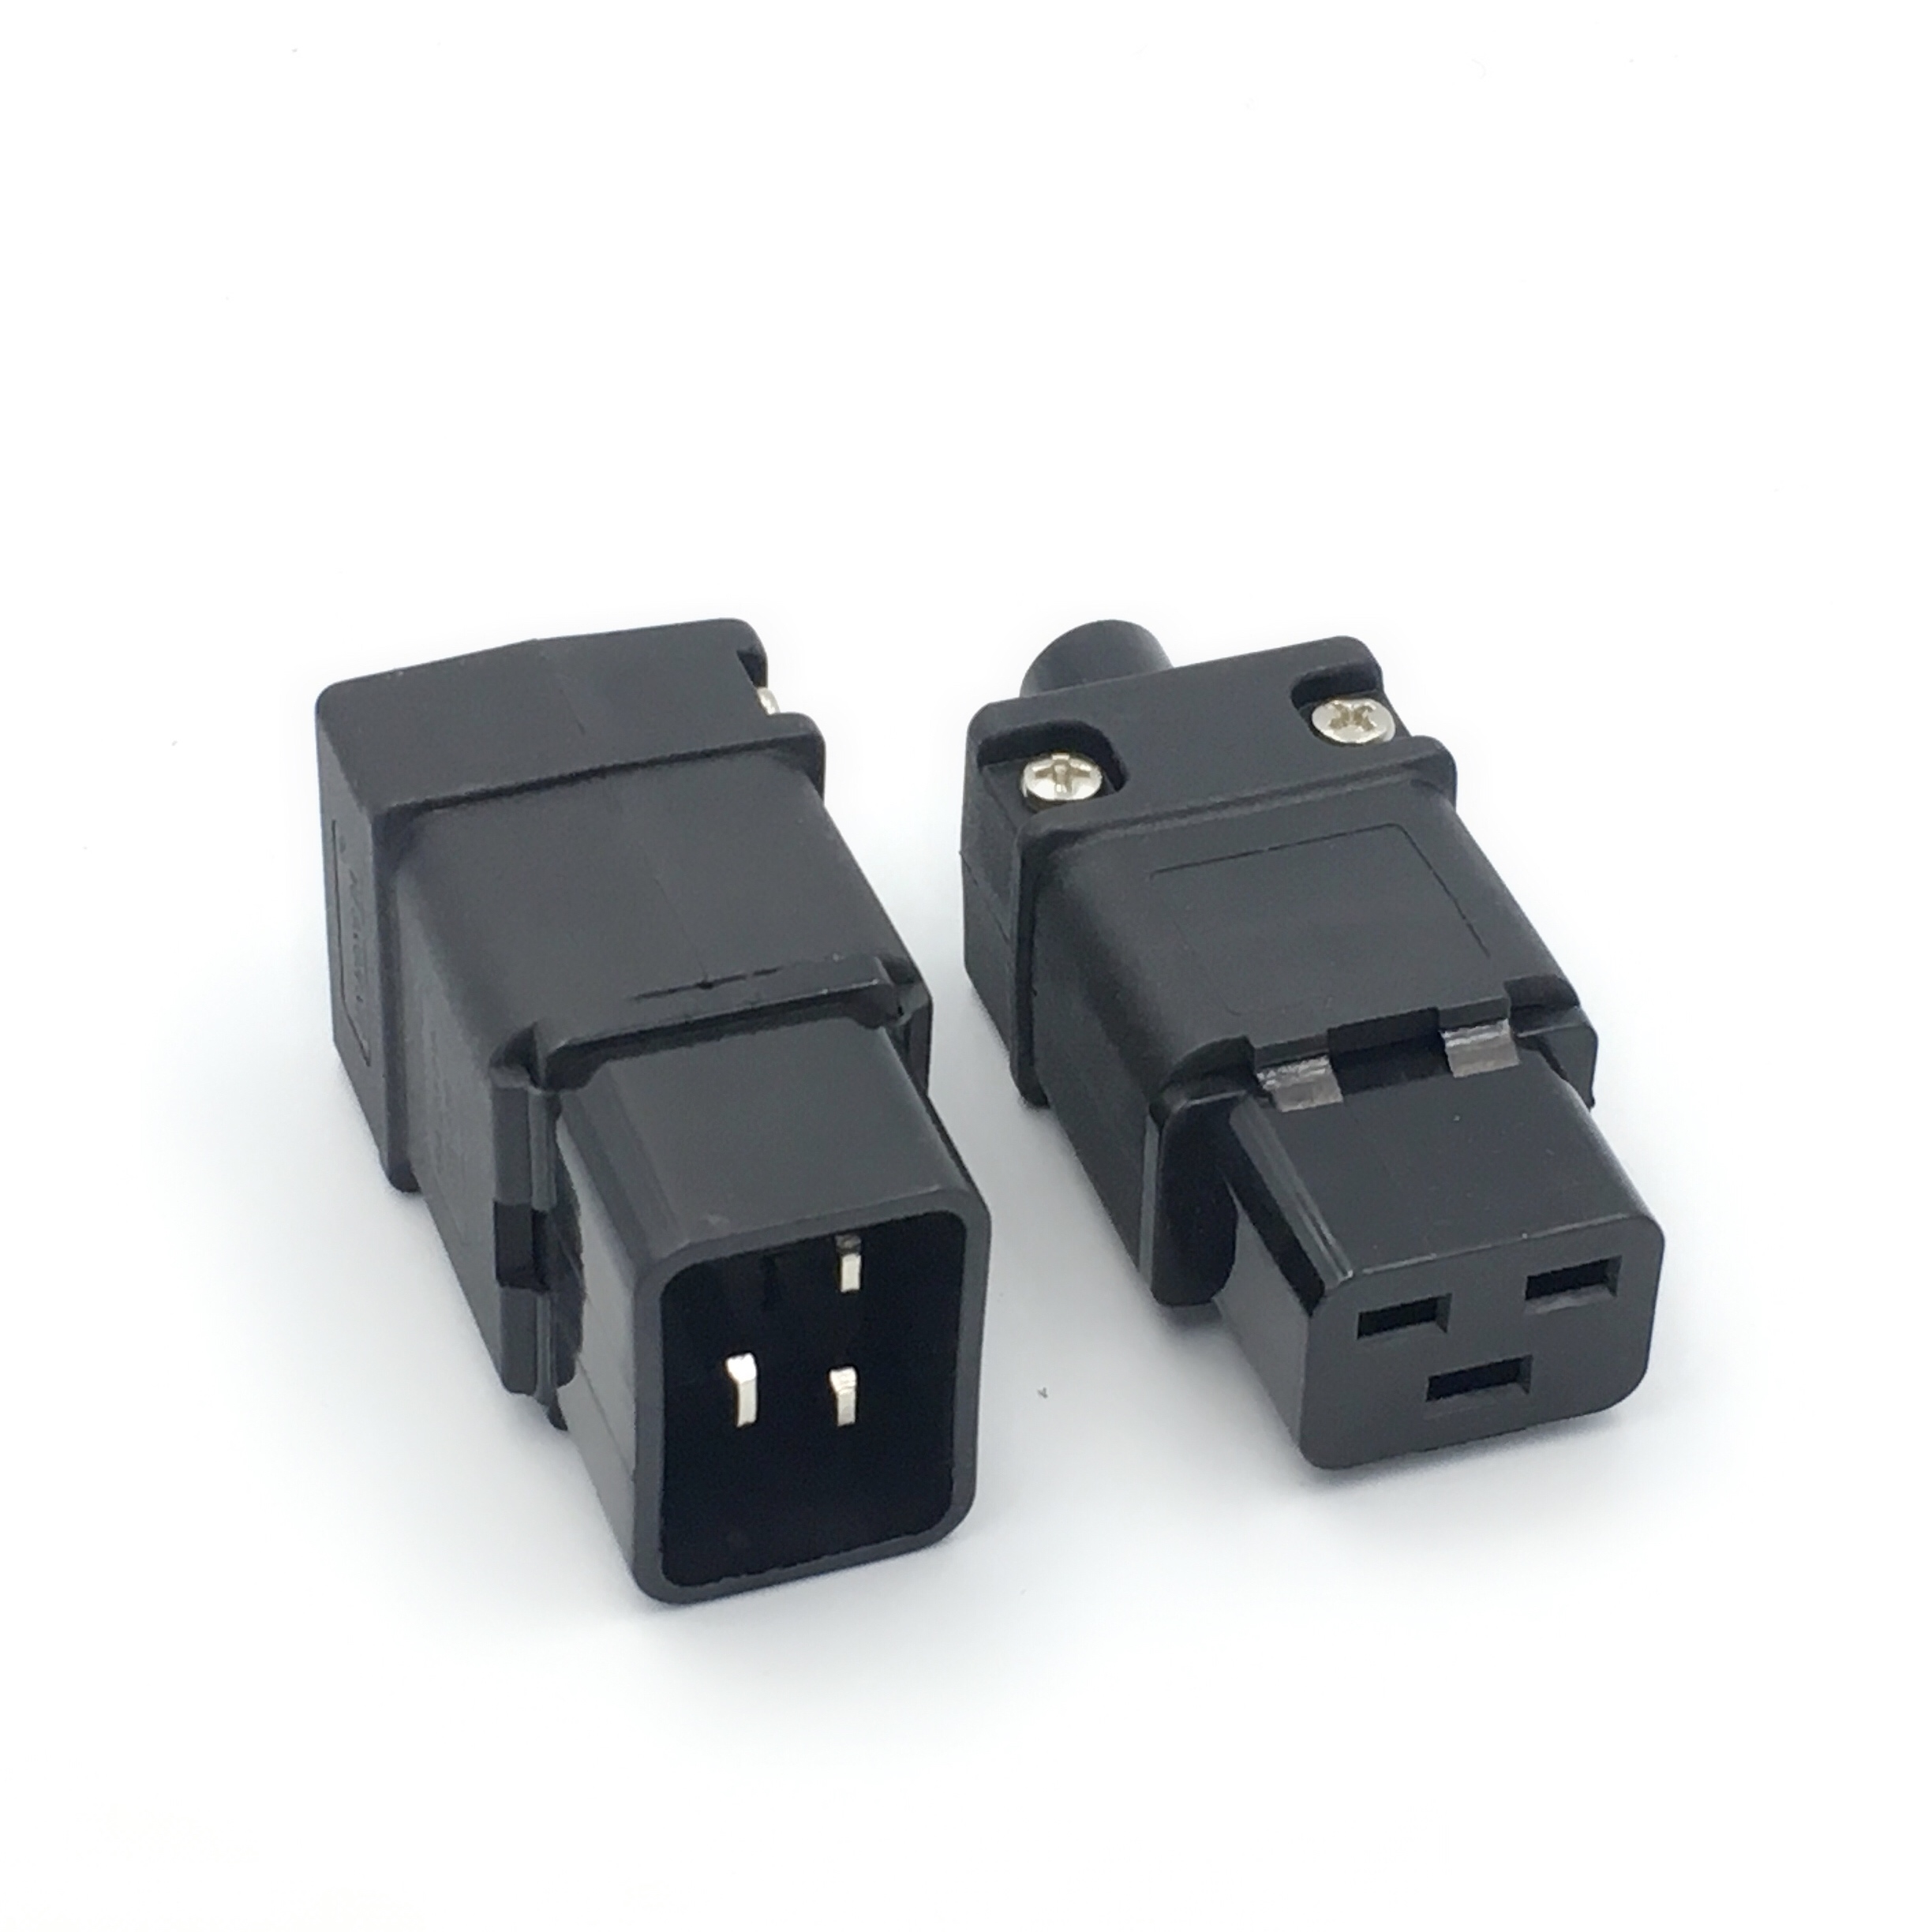 5-20P To C19 220v 16A Power Cable